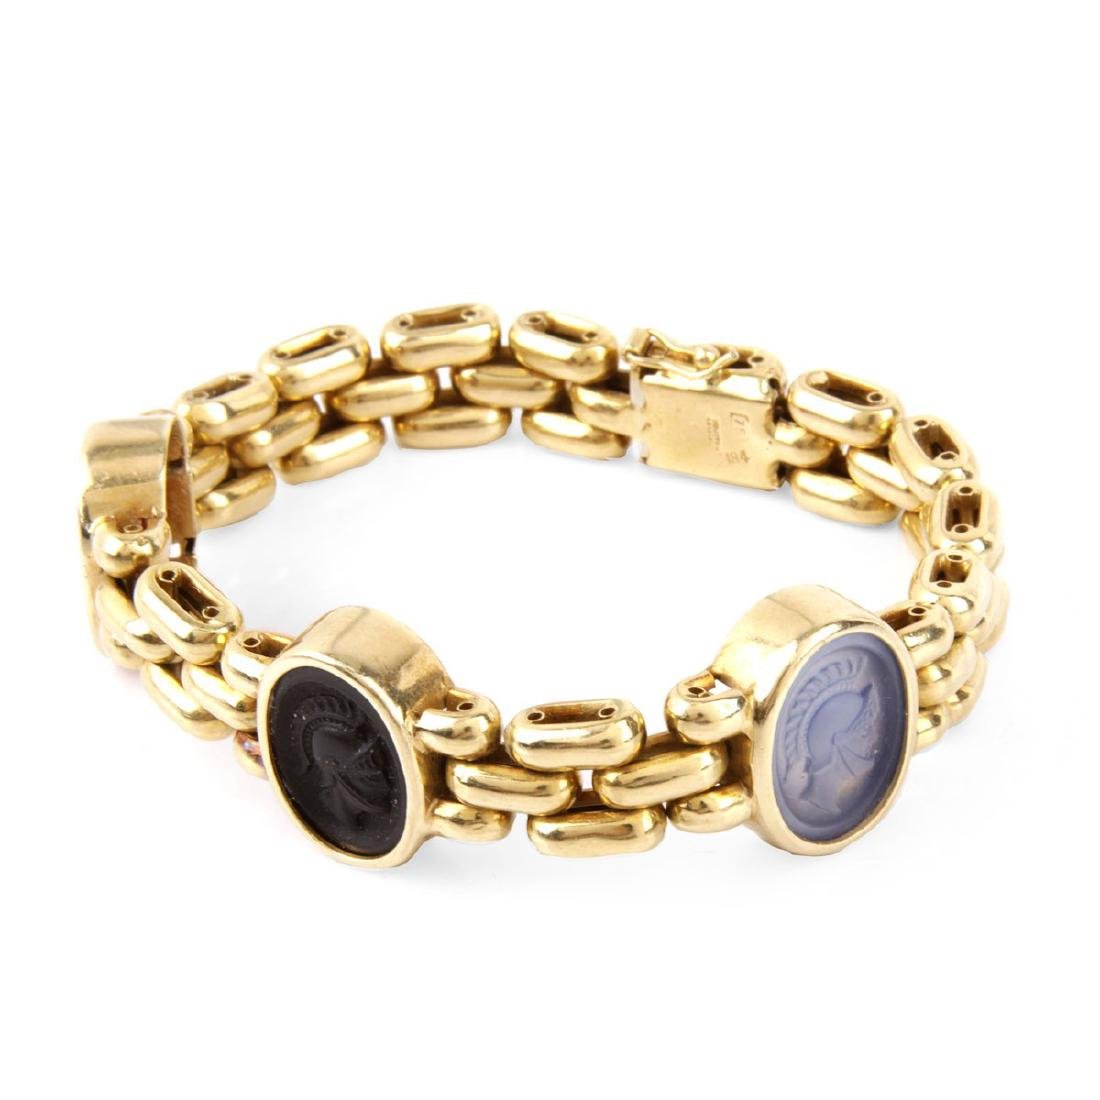 Vintage 18K Gold and Intaglio Bracelet - 2